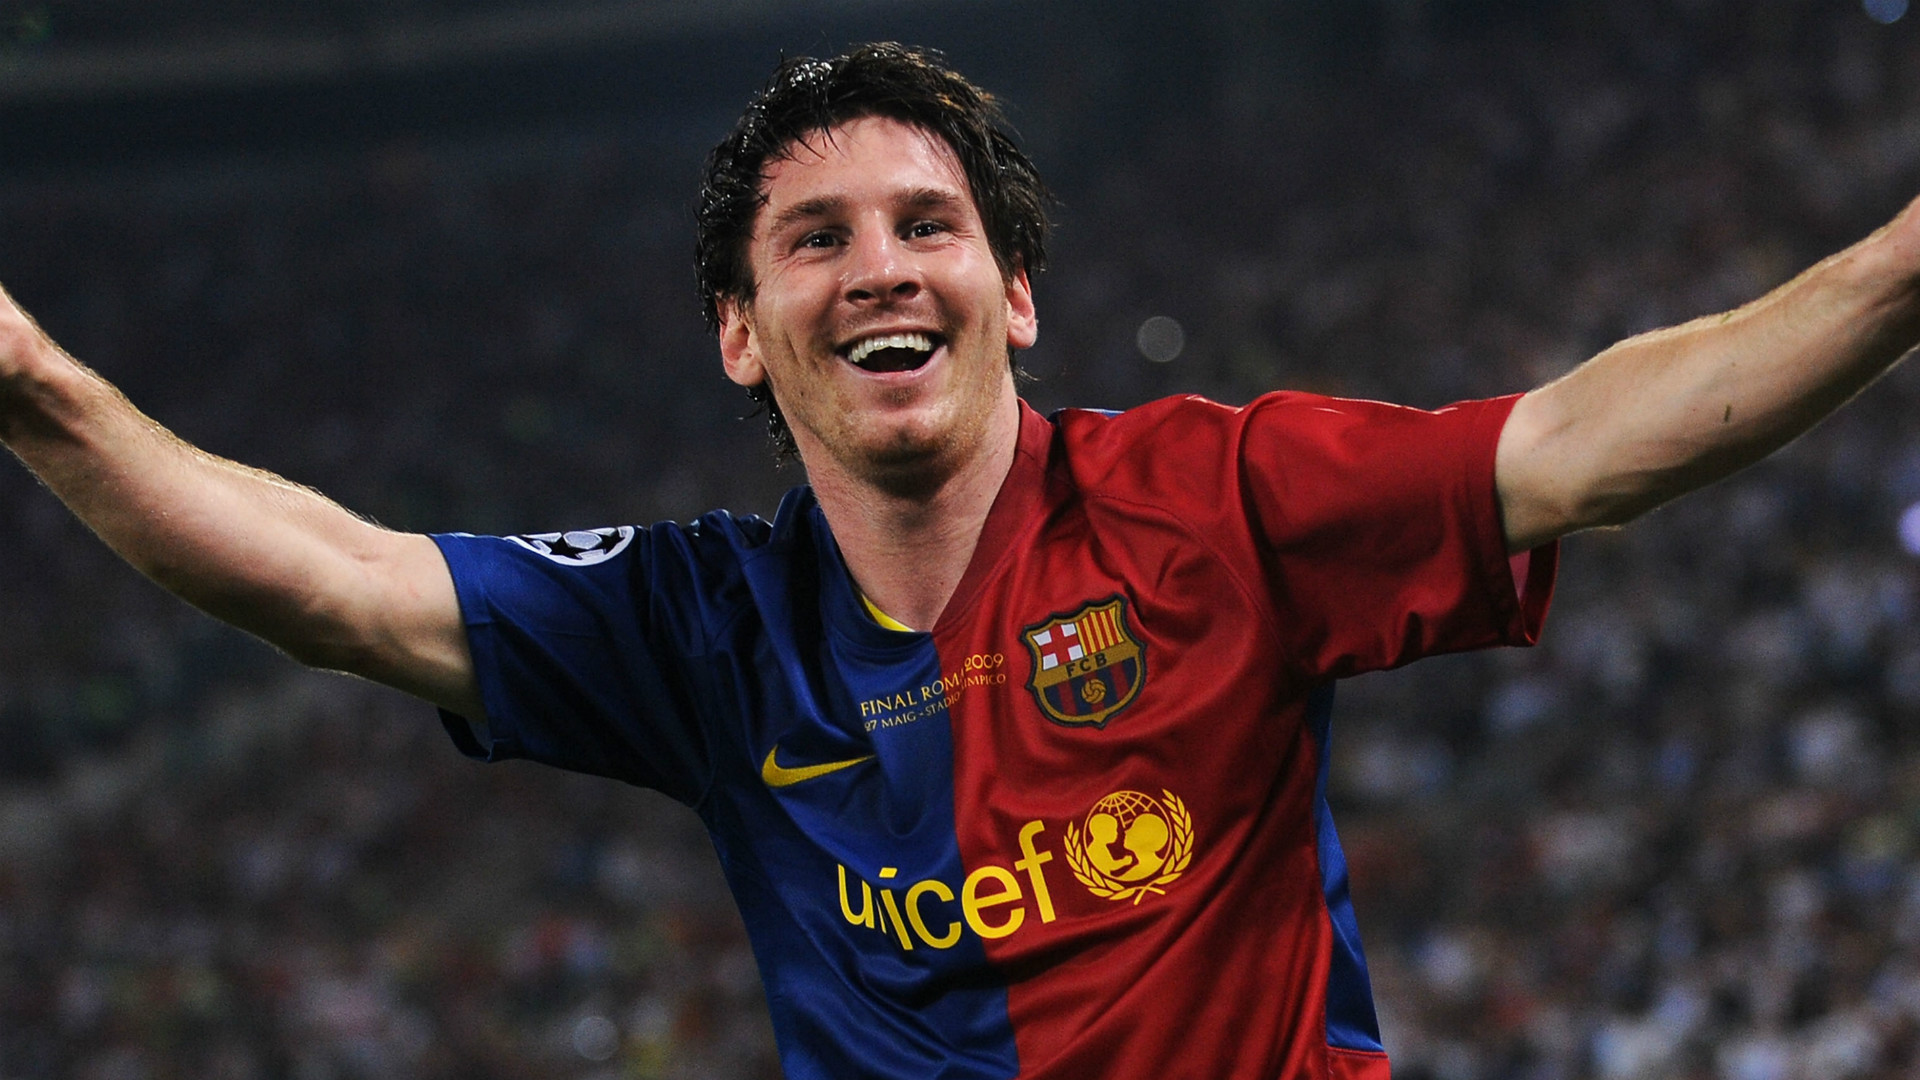 The perfect match: The night Messi's Barcelona conquered Manchester United &Rome